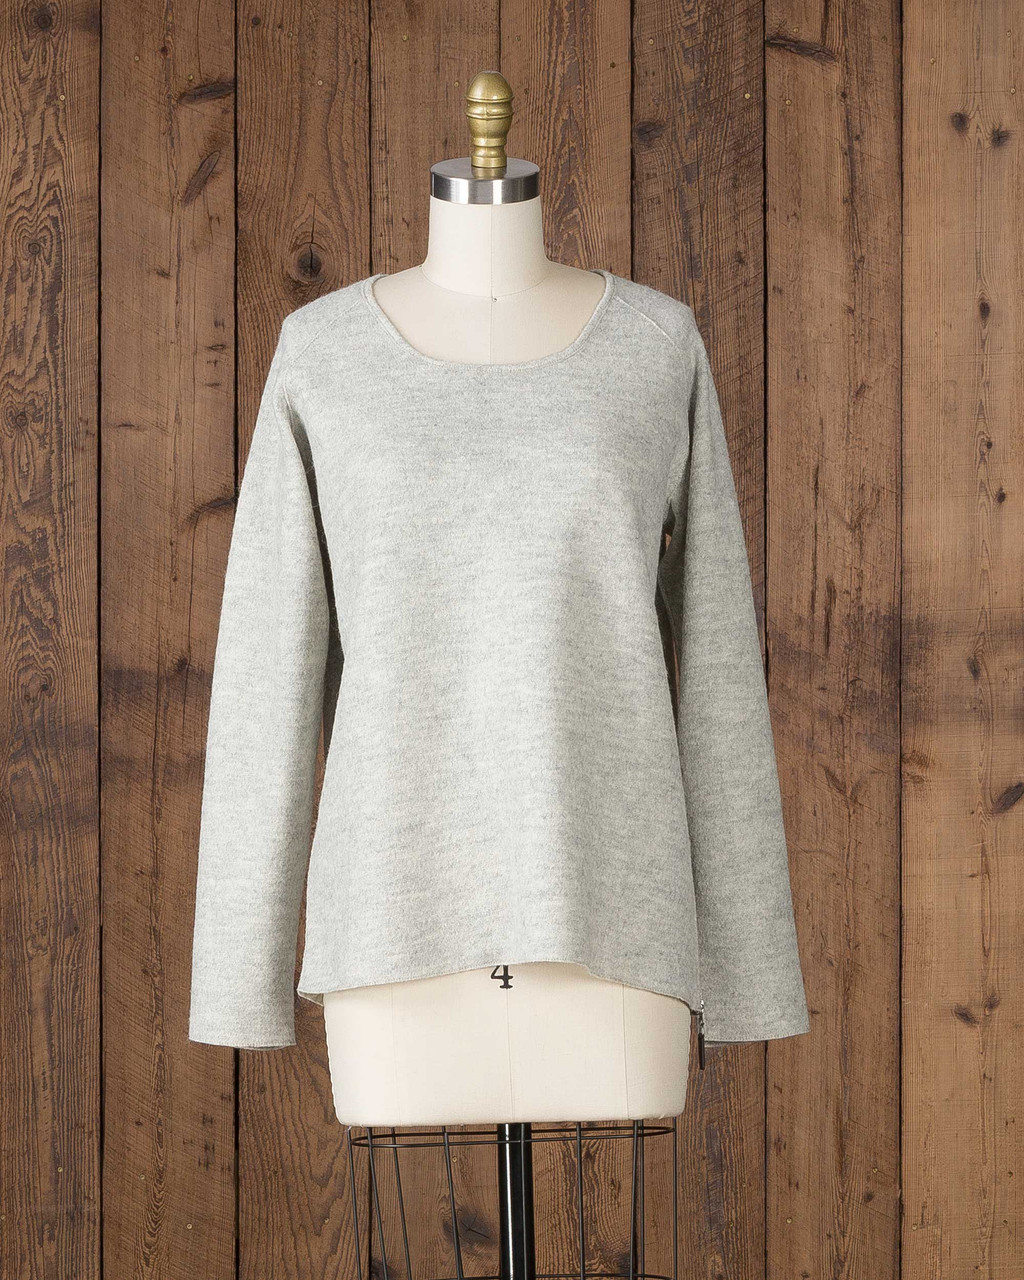 Alicia Adams Alpaca Verbier Side Zip, alpaca sweaters womens, alpaca clothing, baby alpaca sweater, alpaca vs cashmere, pearl grey alpaca sweater